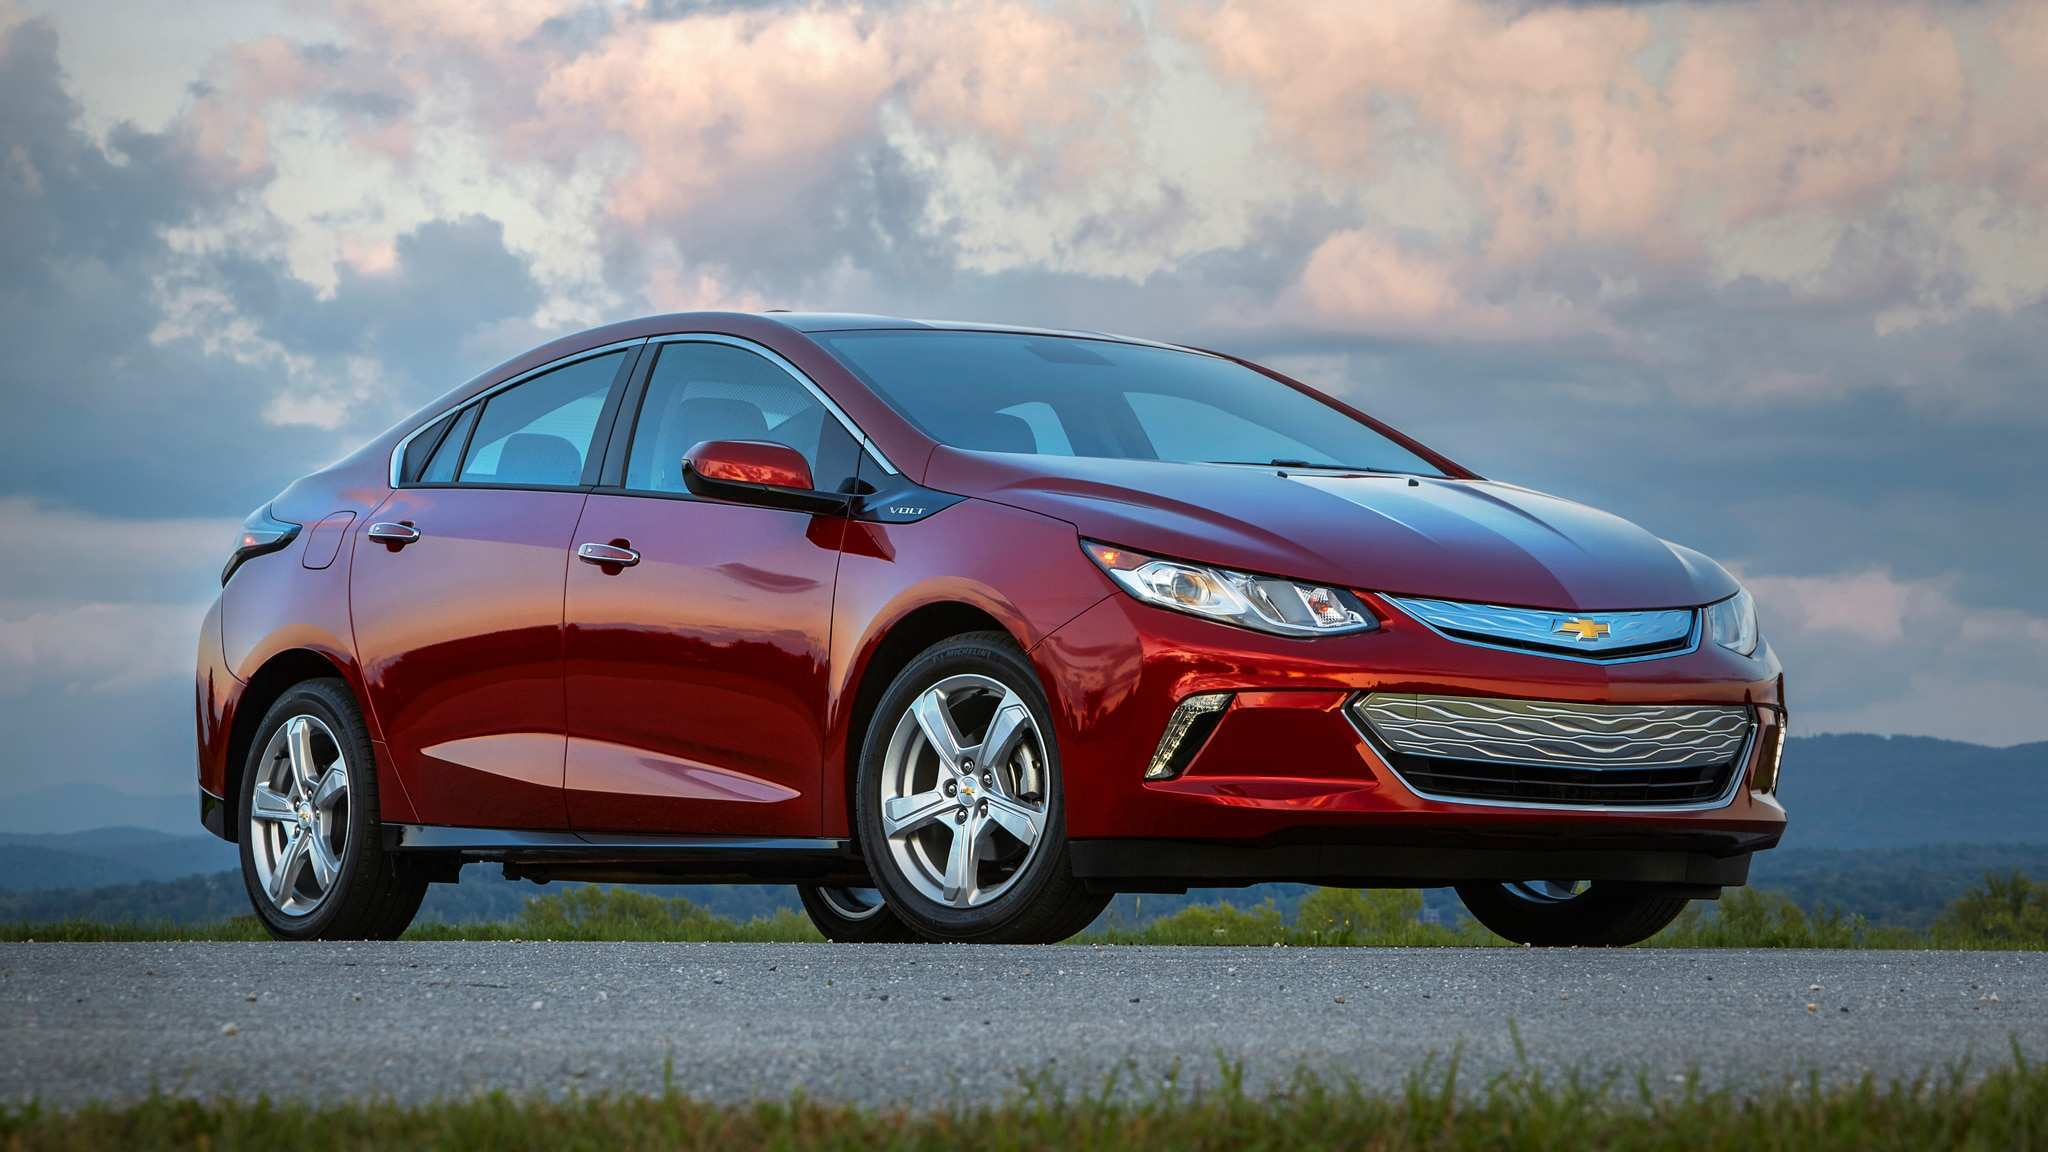 85 All New Chevrolet Volt Sport 2020 Release Date